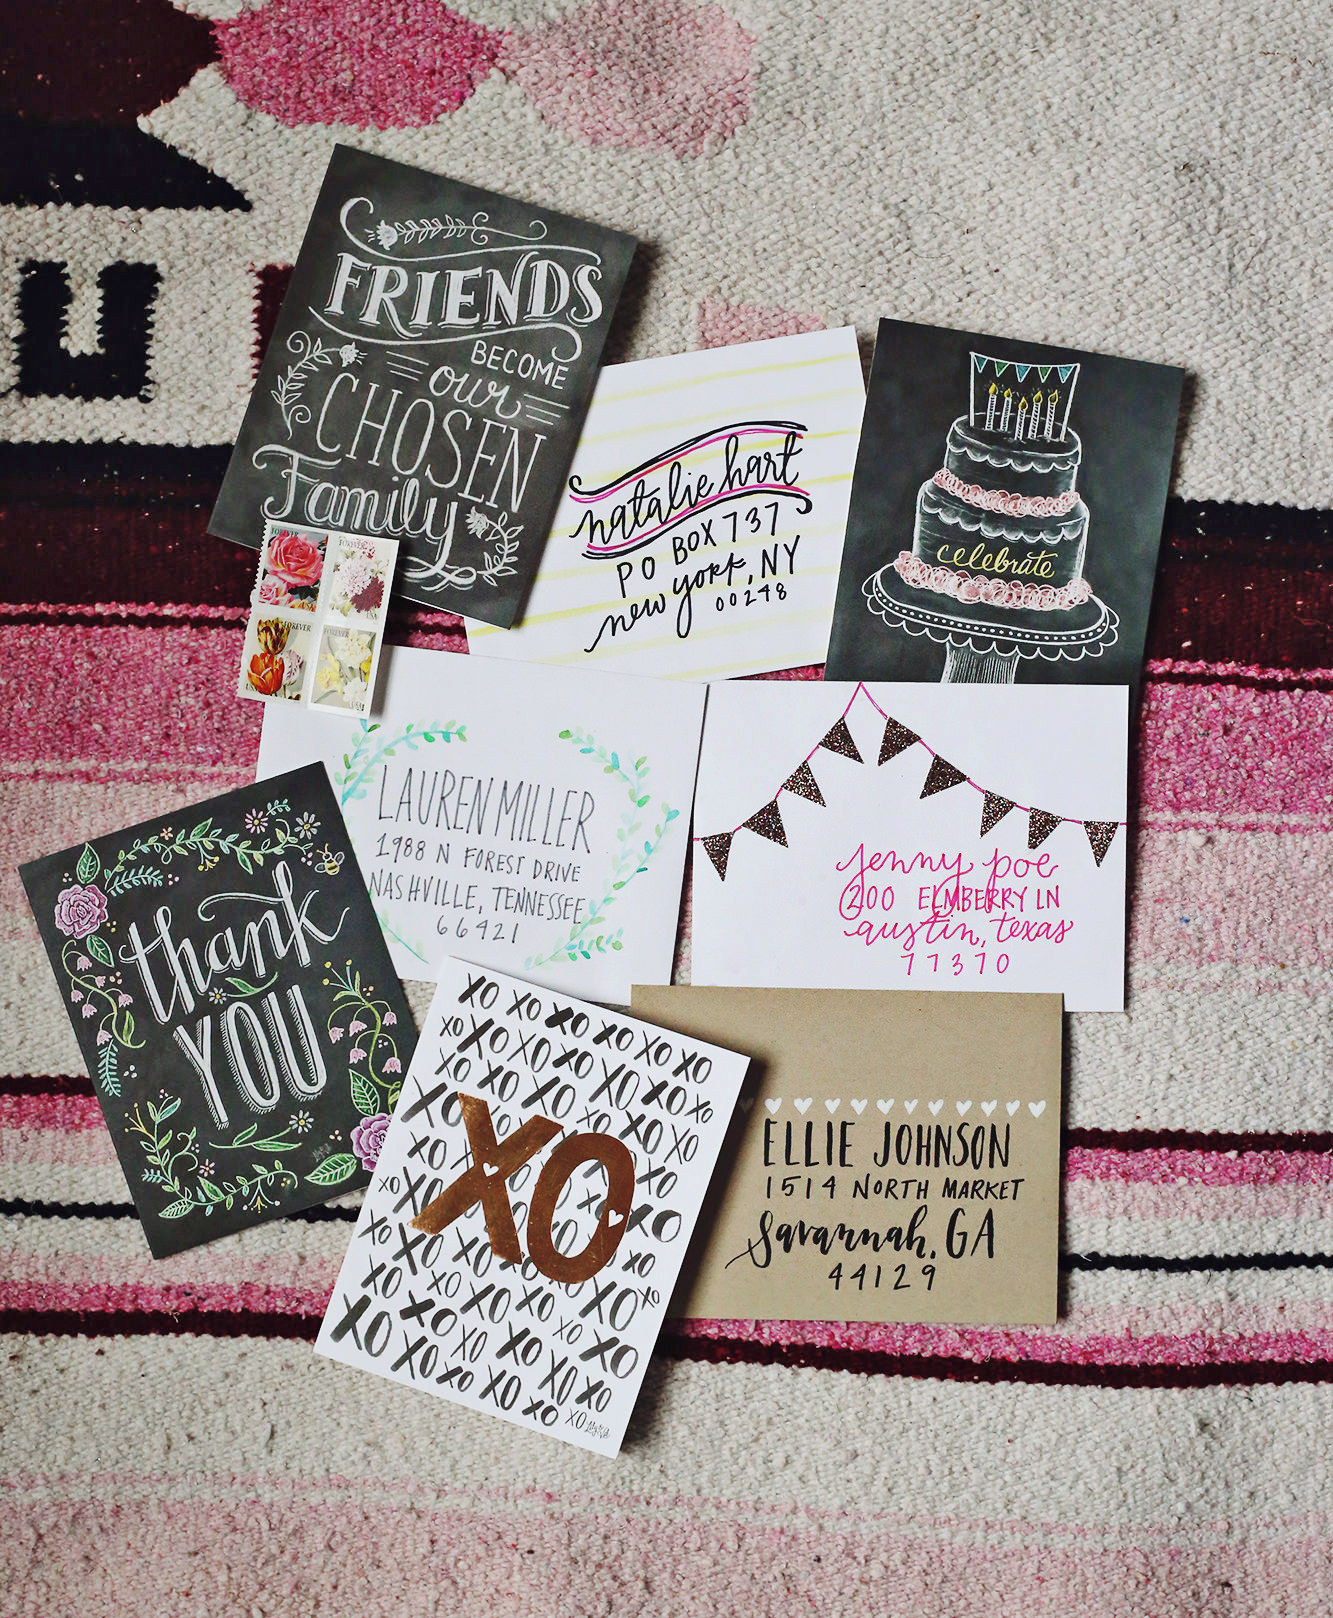 We're celebrating National Lettering Writing month on Lily & Val Living with 4 fun ideas for addressing envelopes